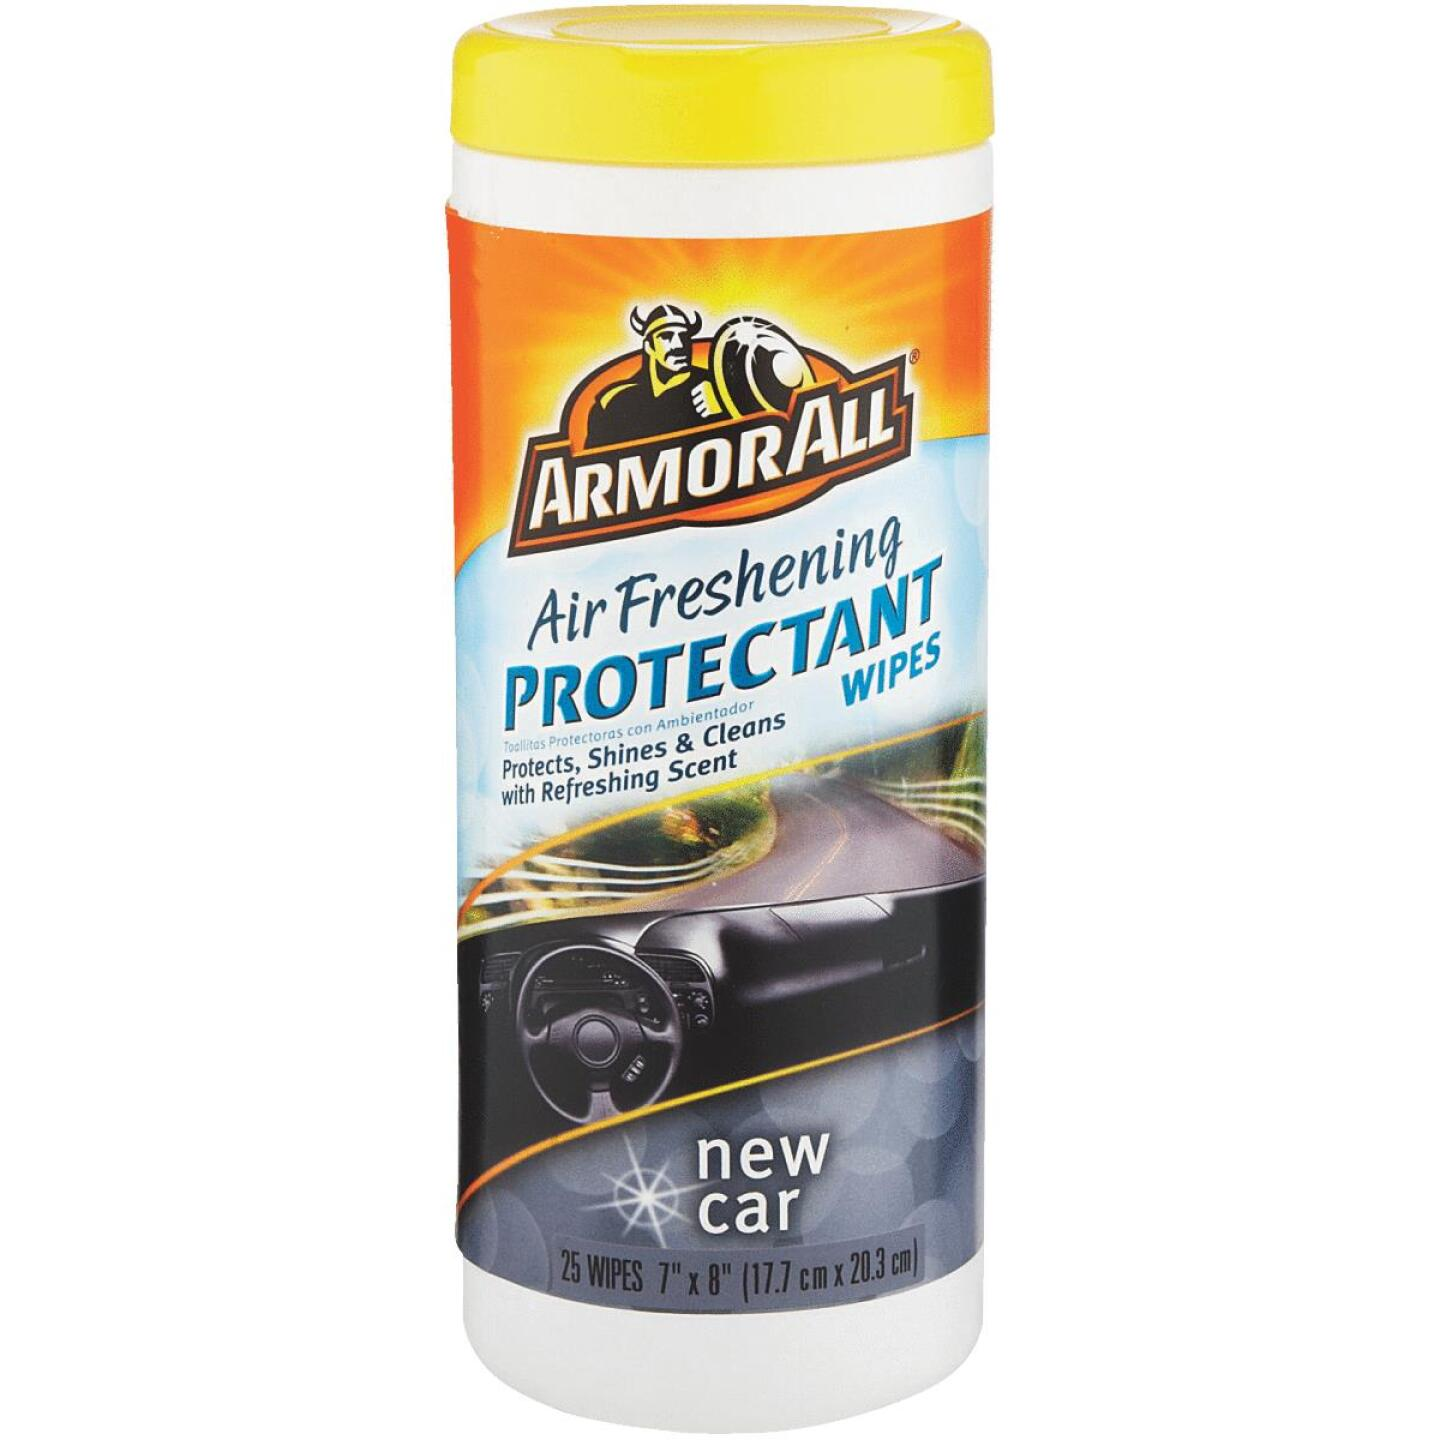 Armor New Car Scent Wipe Protectant Wipe Image 1